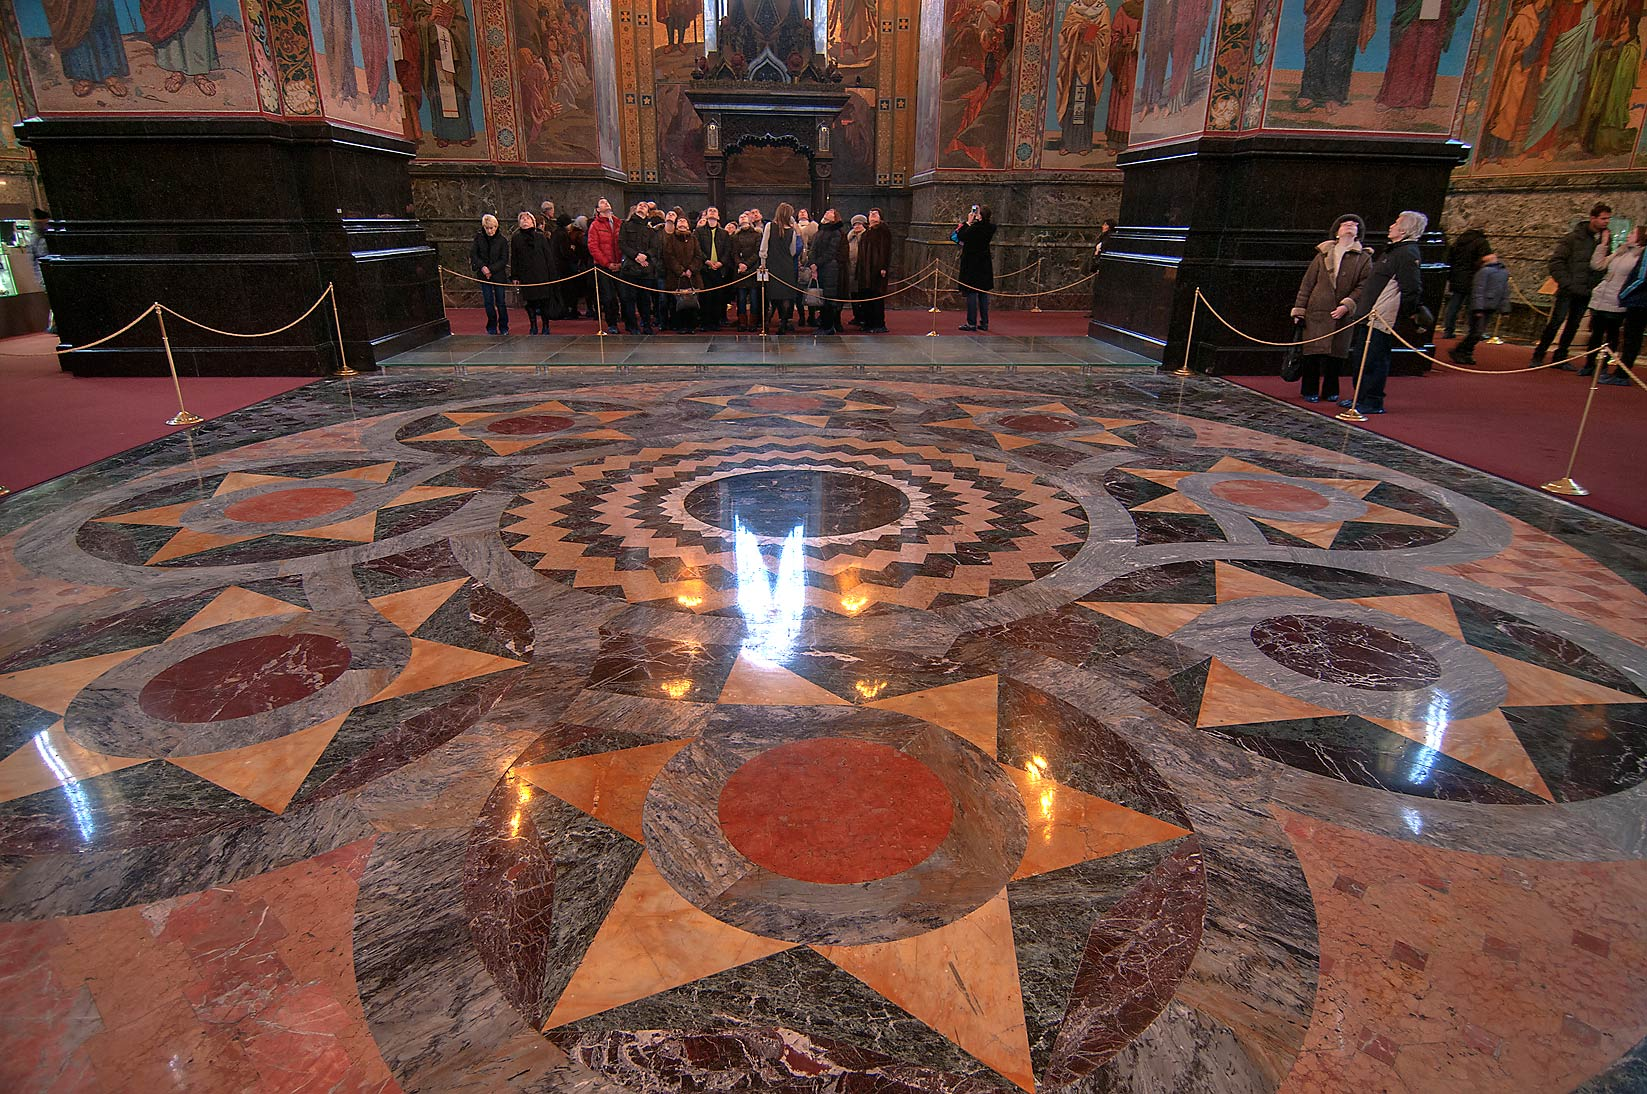 Marble floor of Church of Savior on Blood. St.Petersburg, Russia